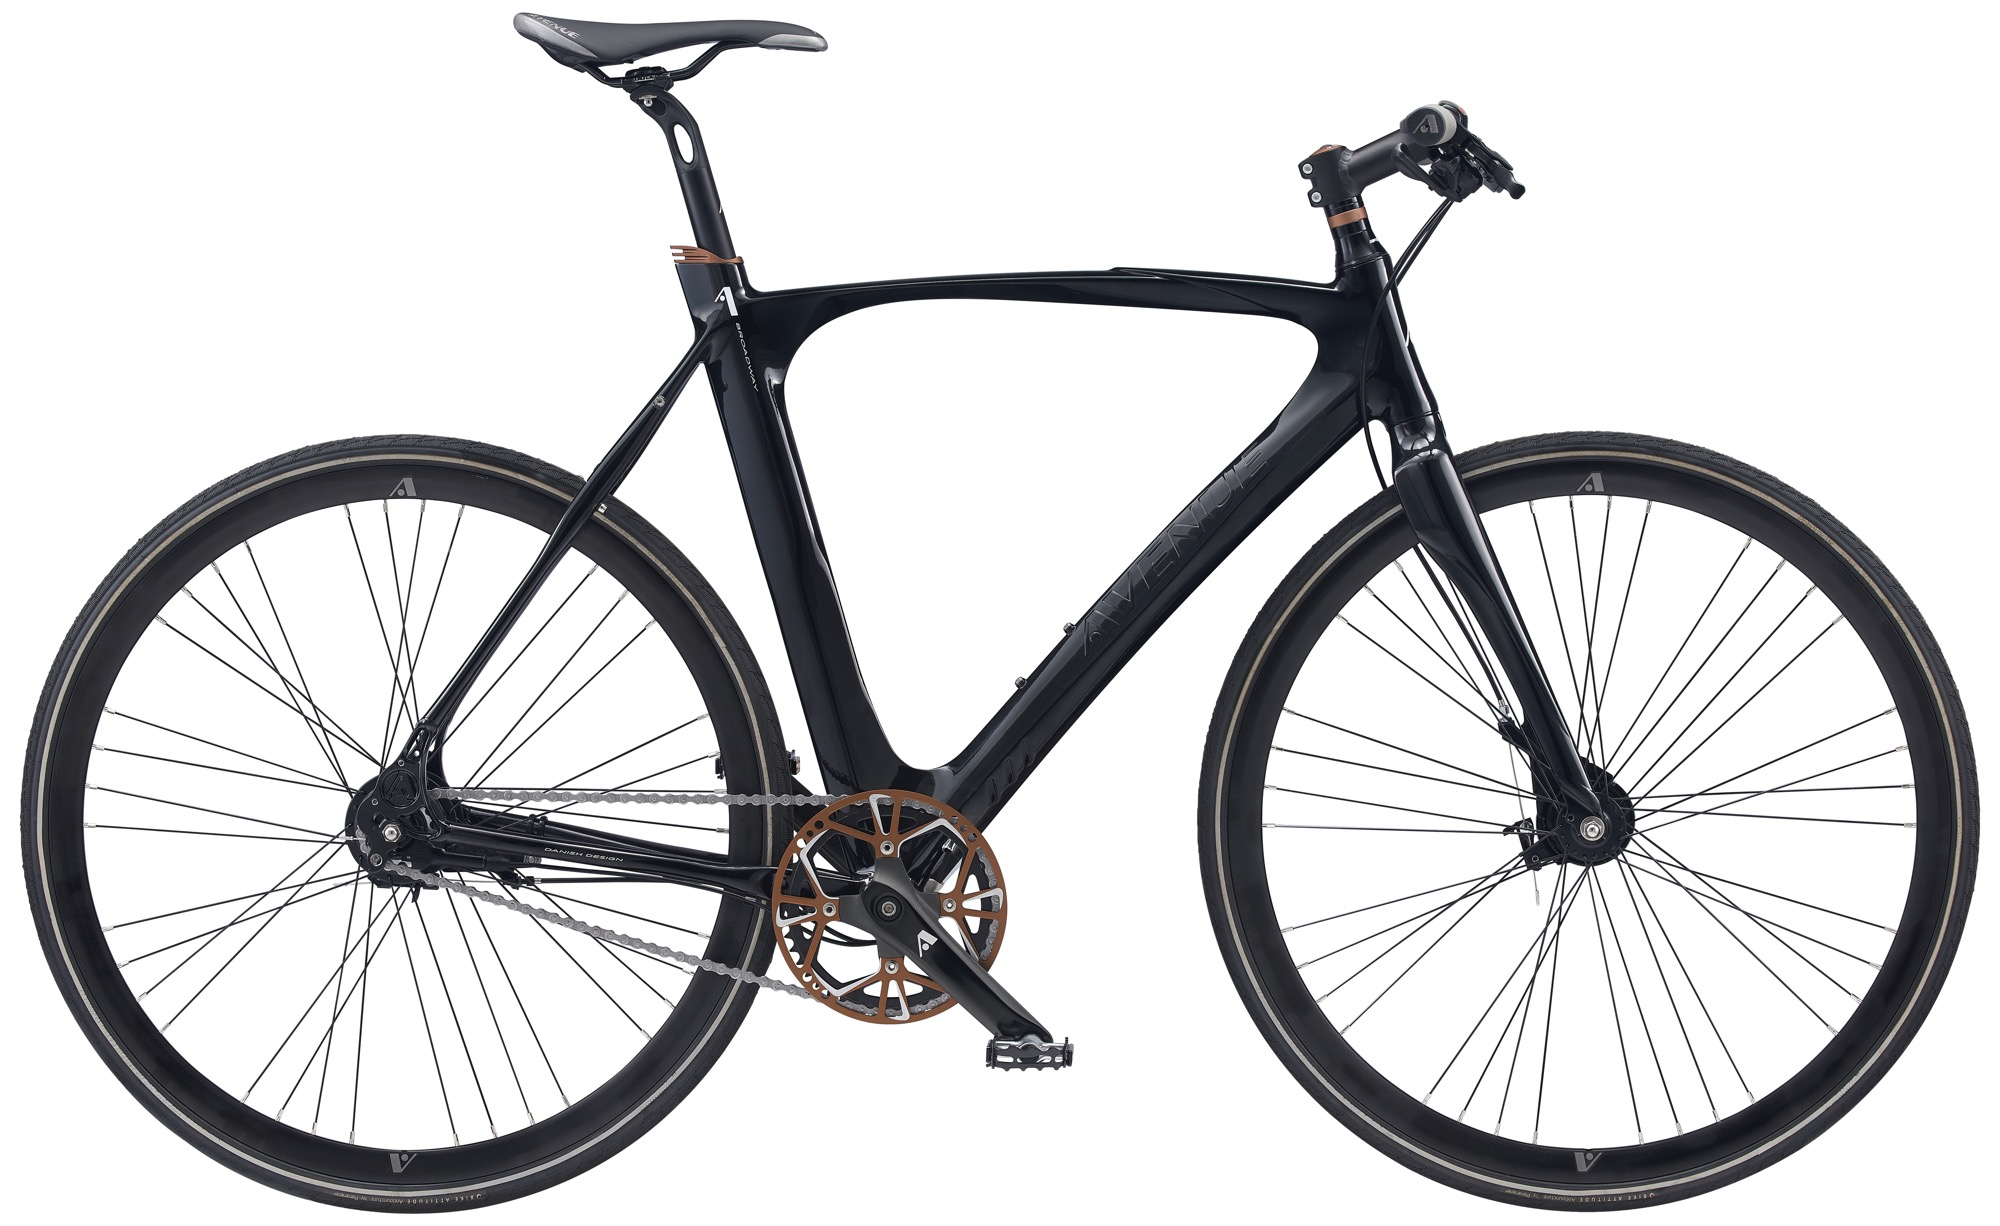 Avenue Broadway Herre 7 Gear Rullebremse - Shiny Black 2020 Cykler||Avenue Cykler